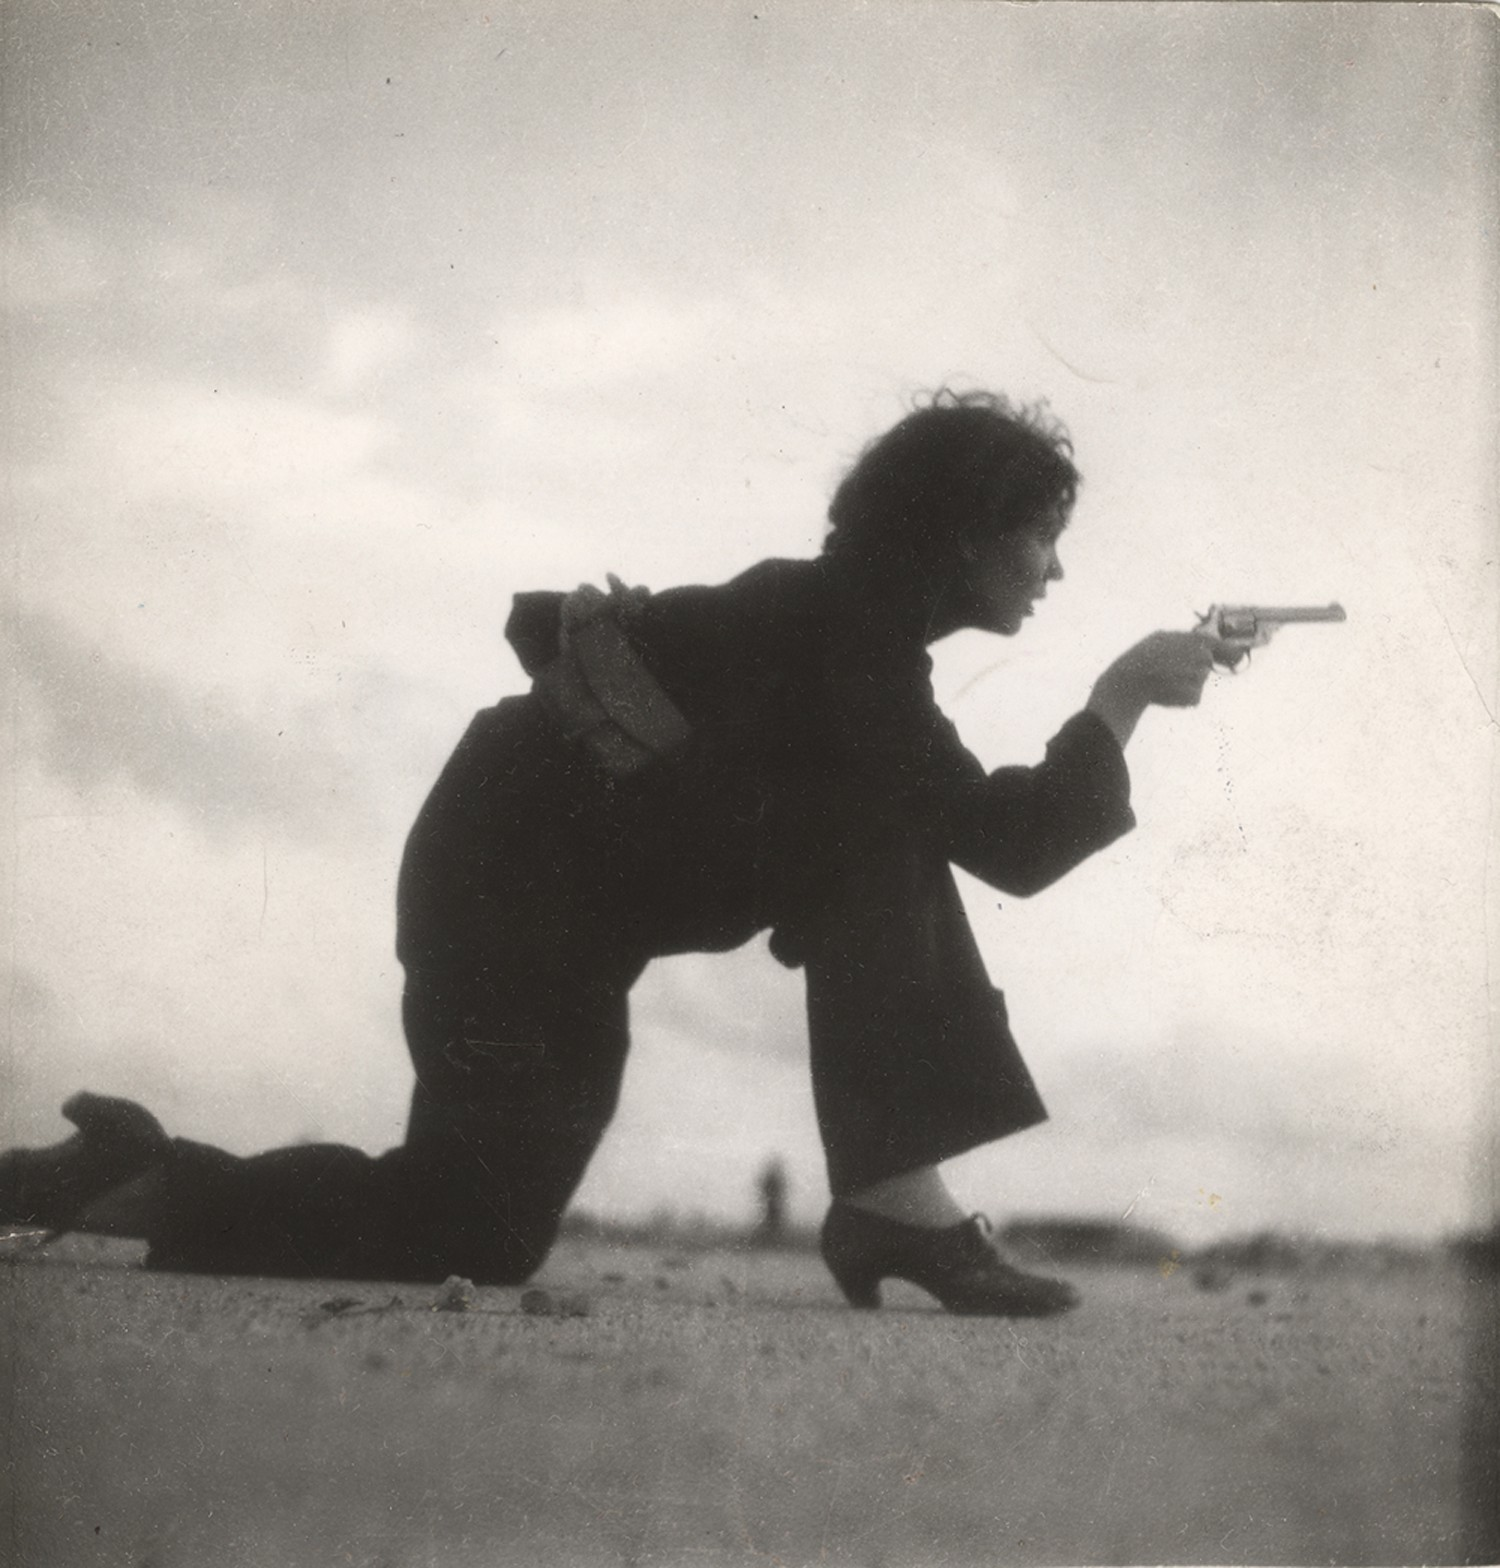 The first female war photographer killed in action was 26 and had a brilliant career ahead of her